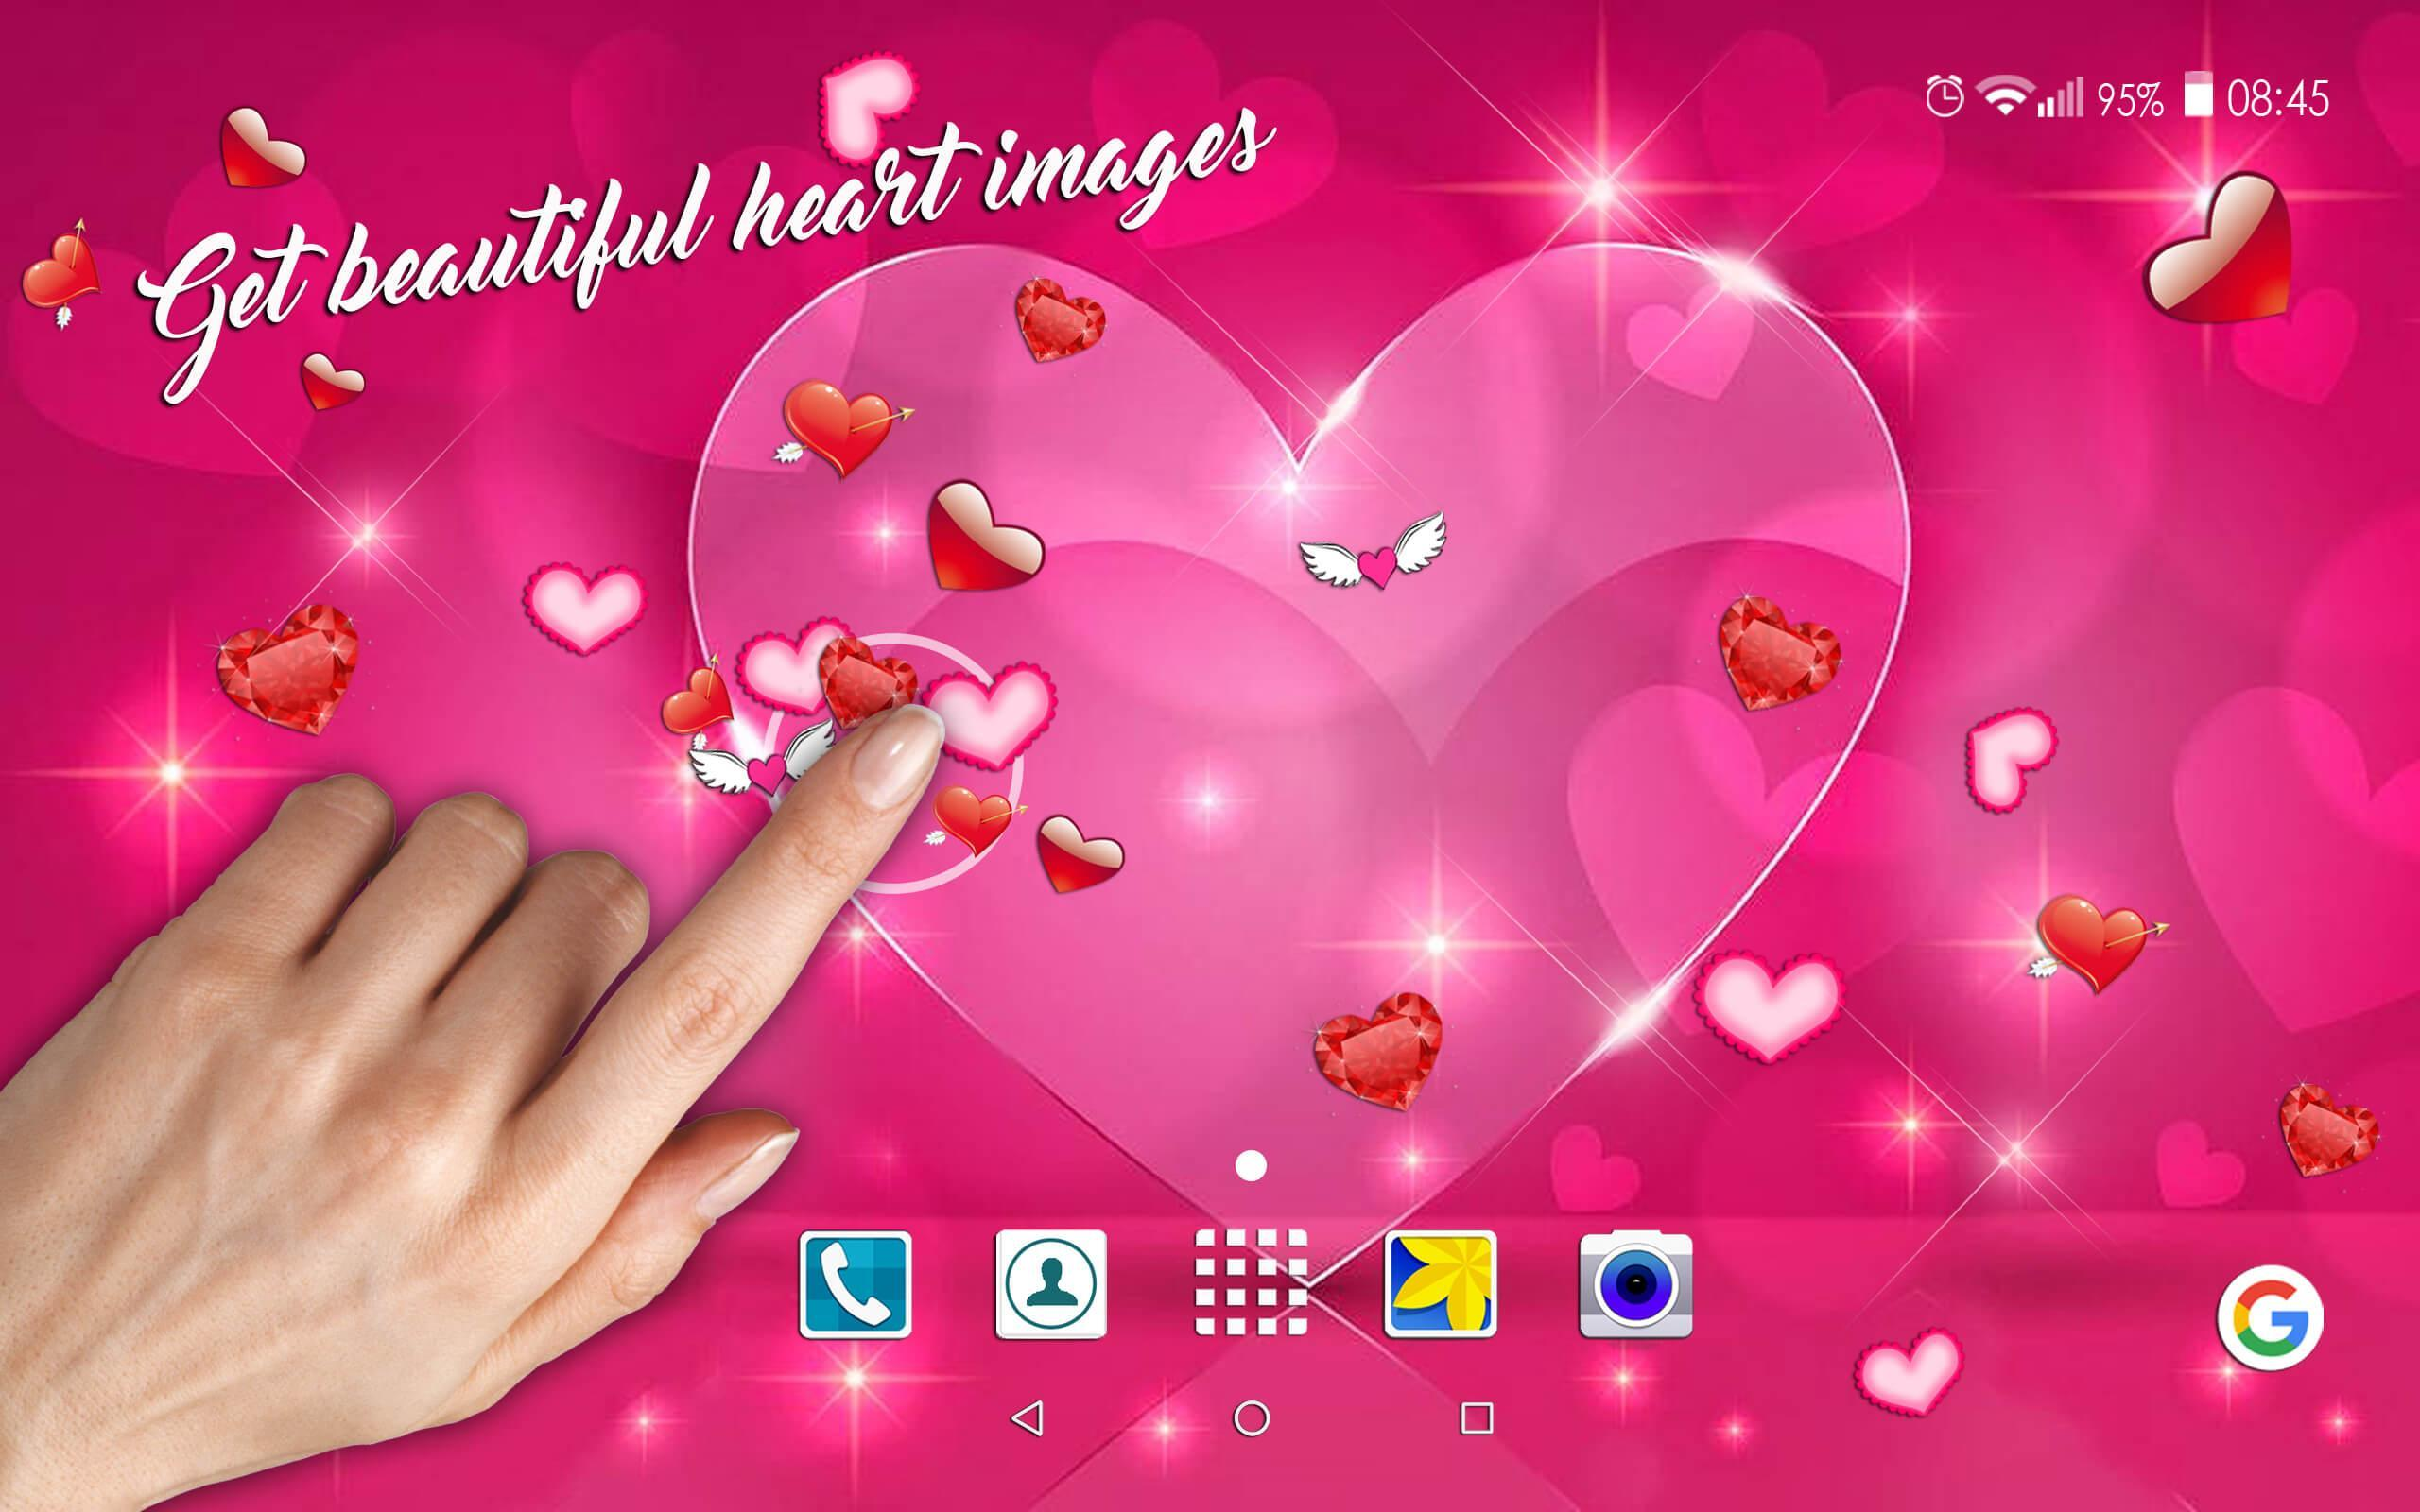 Wallpaper Hati 💞 Gambar Cinta Romantis For Android APK